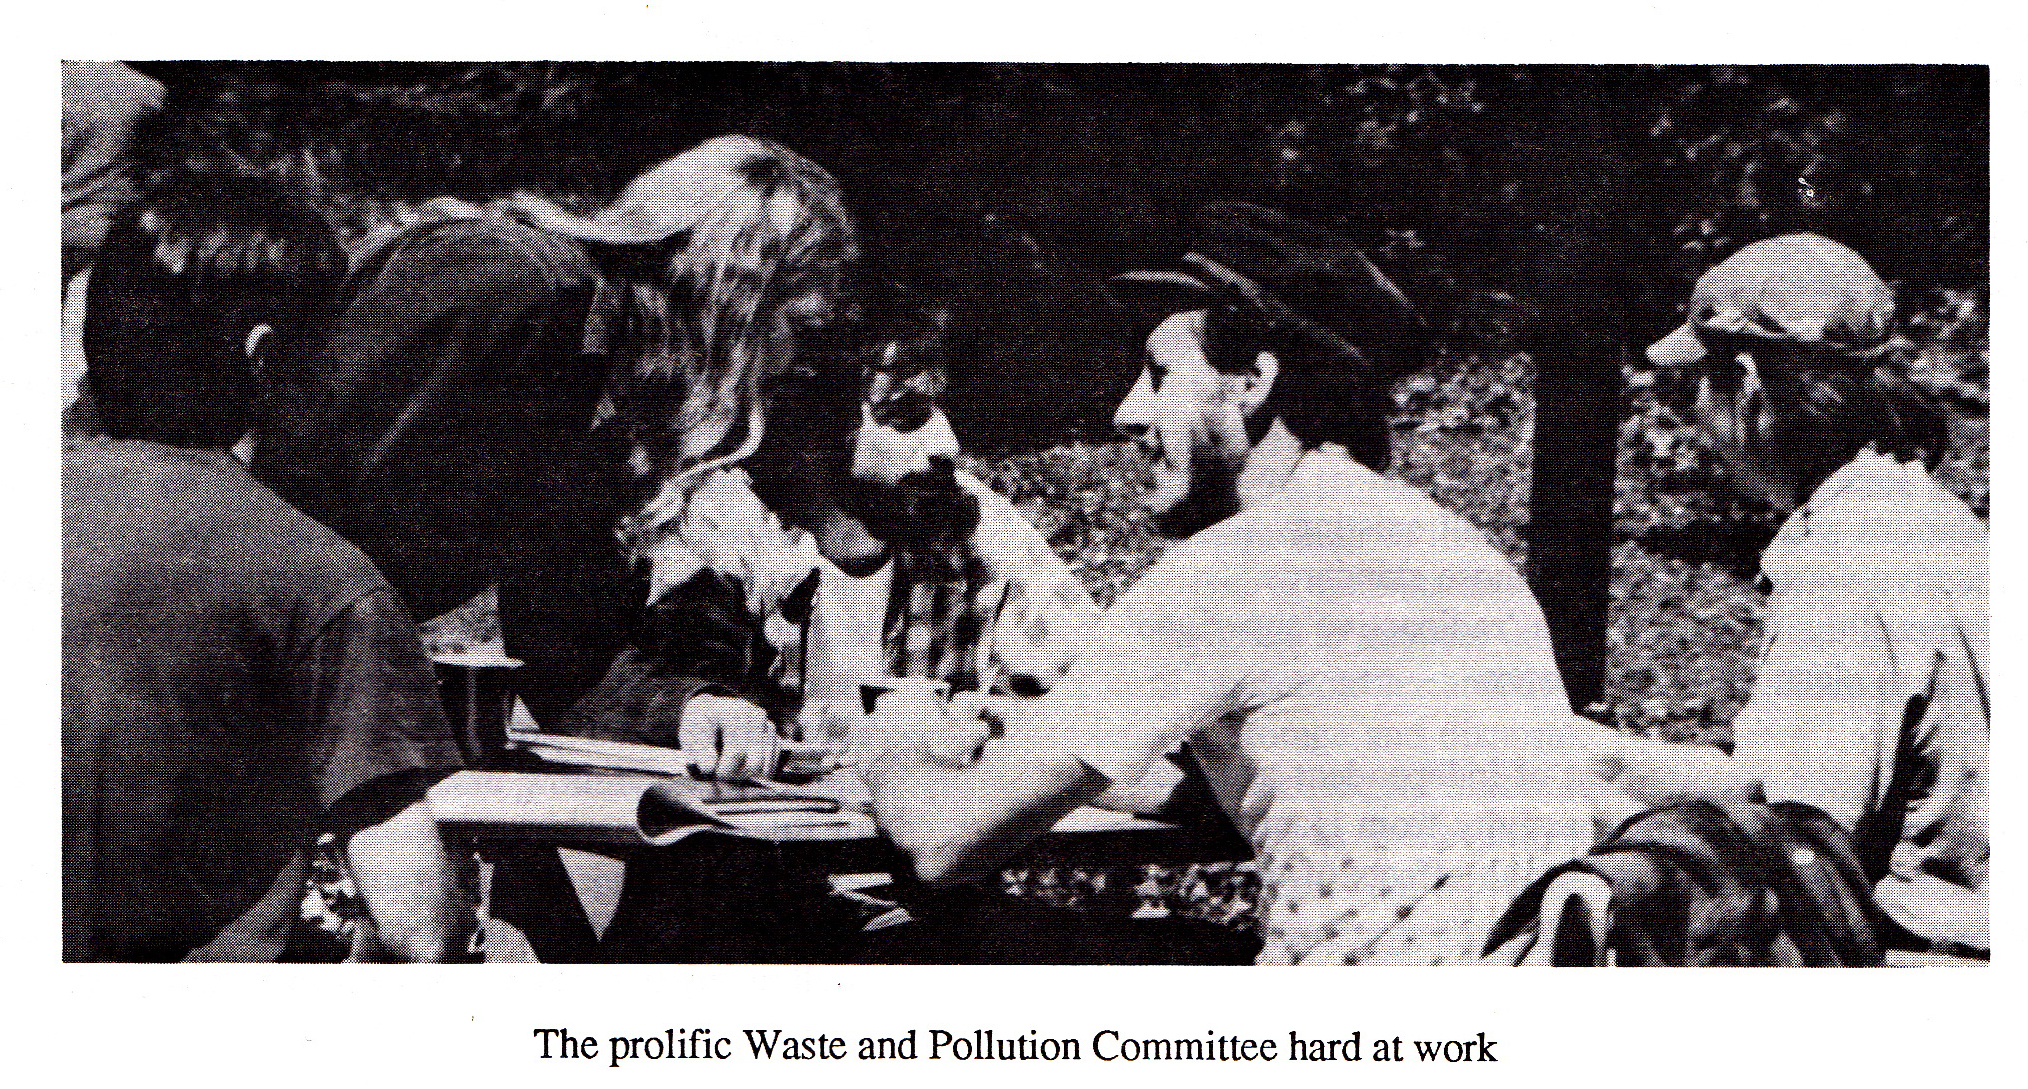 The prolific Waste and Pollution Committee hard at work.